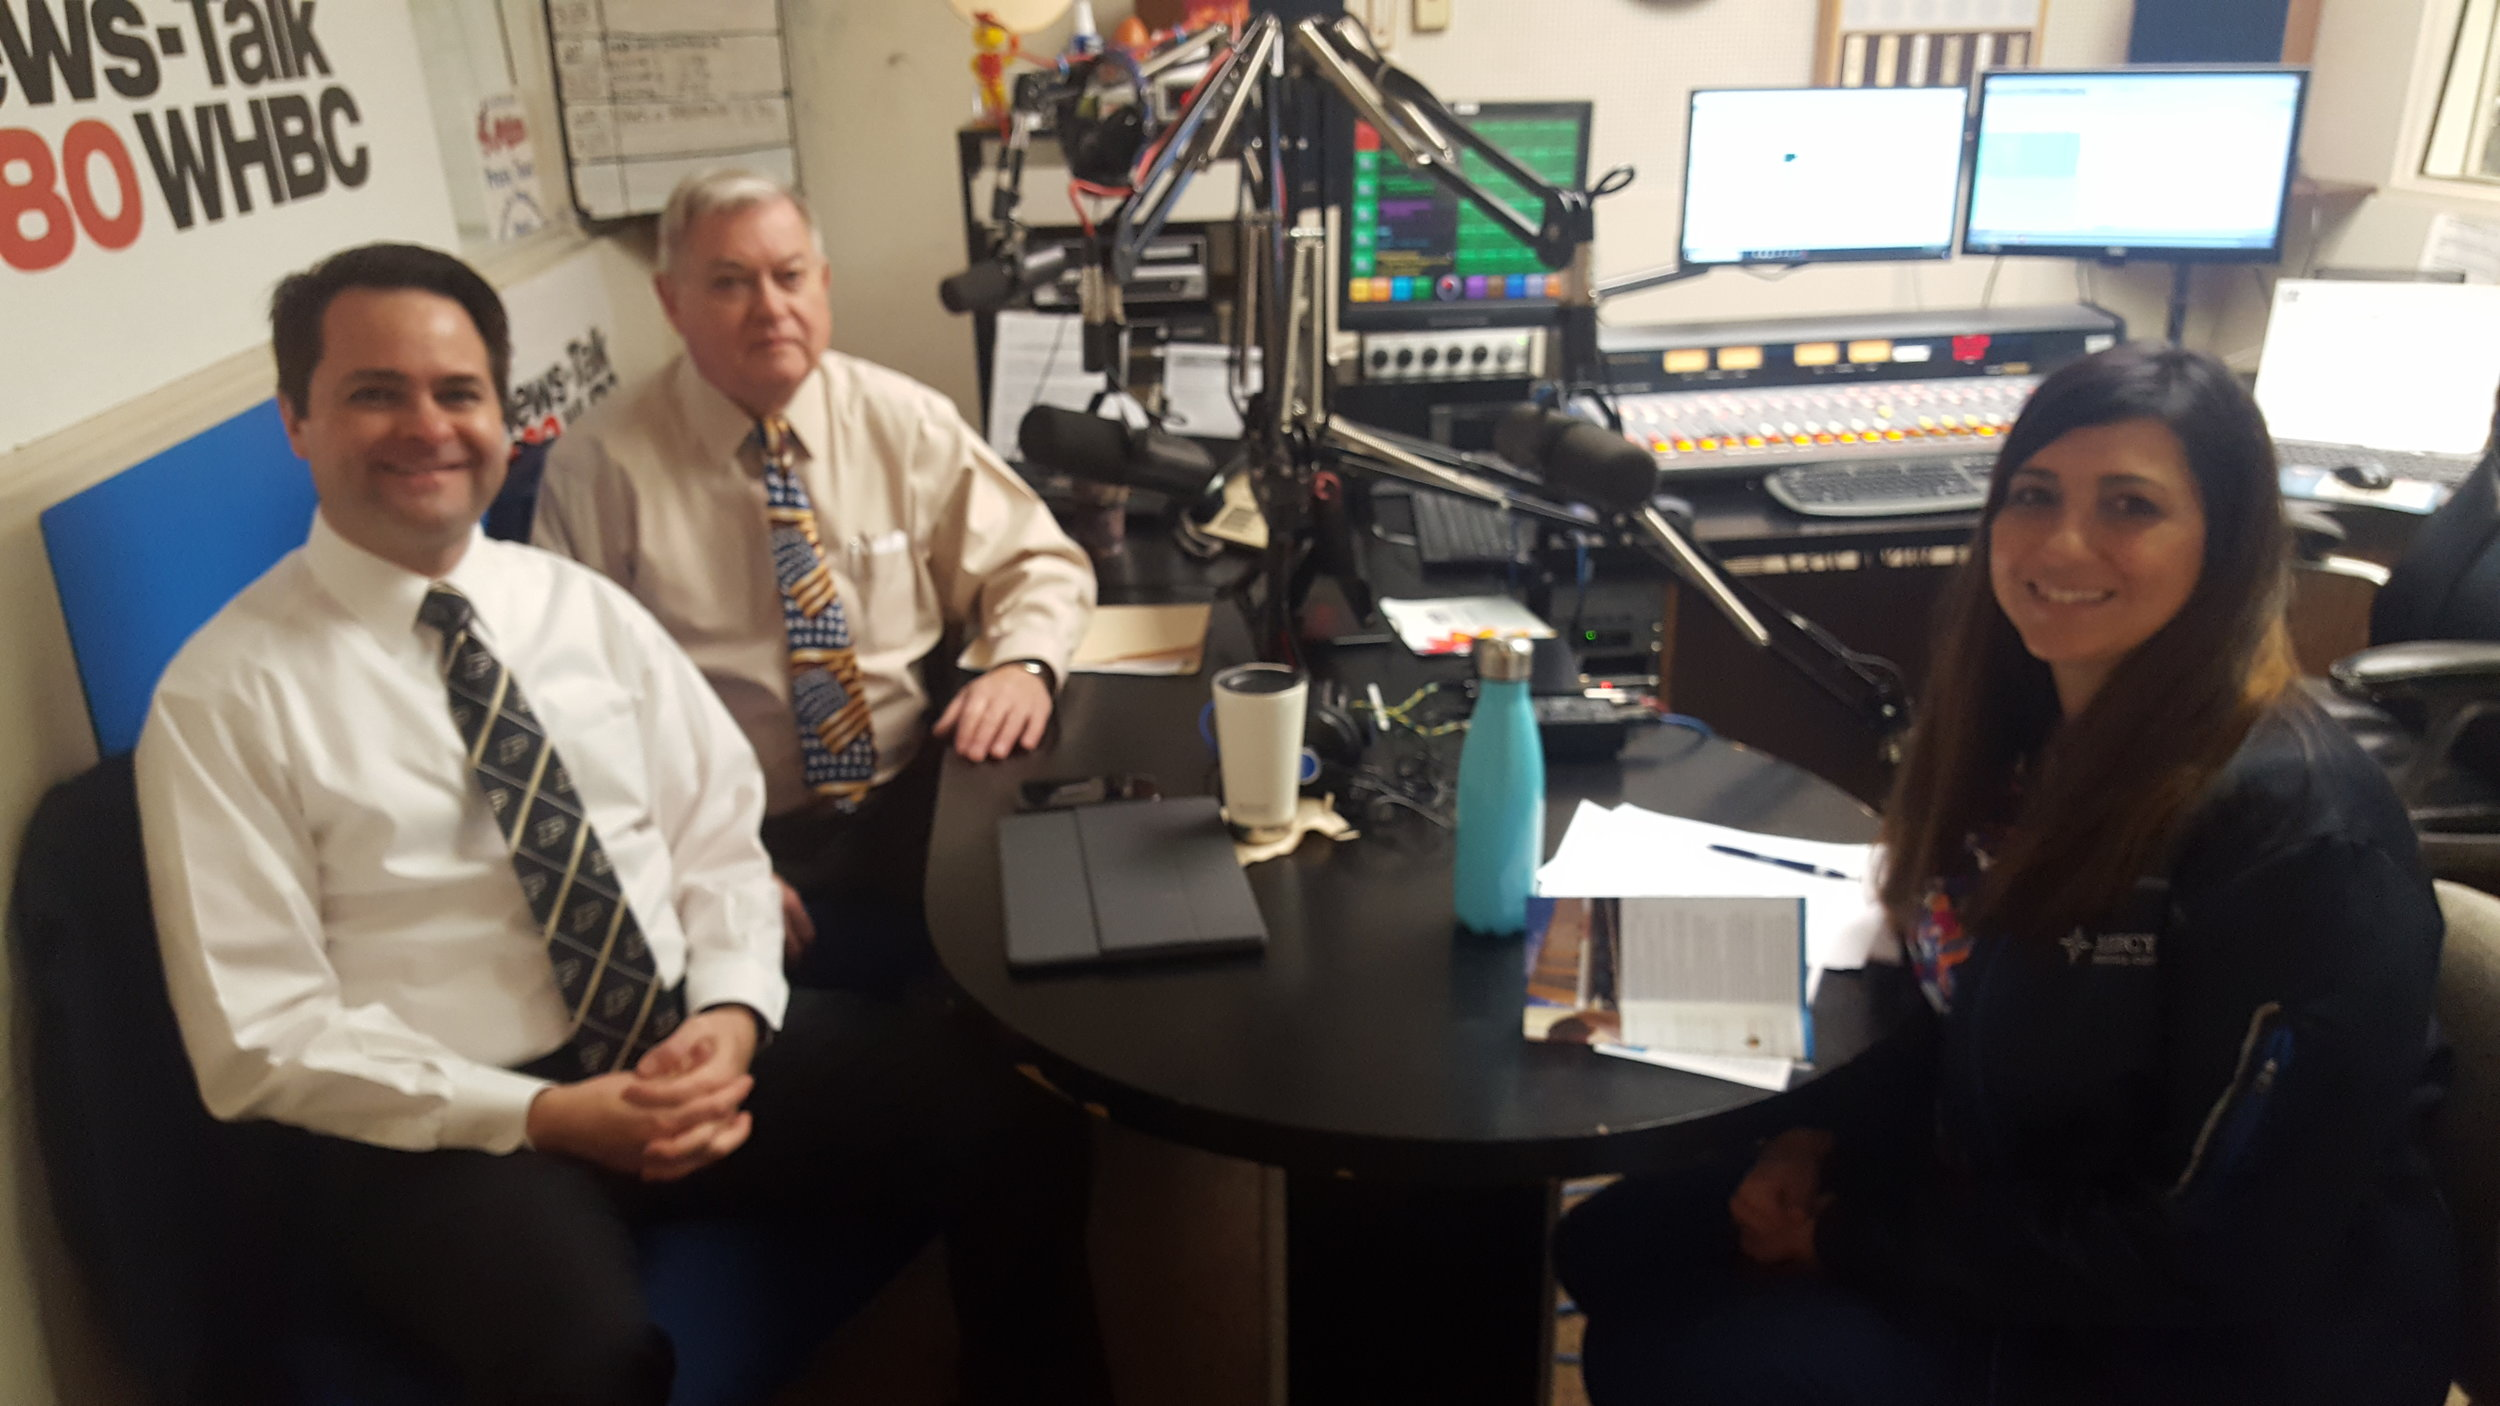 Pictured (L-R): Health Matters Hosts Brad White, R. Ph., and Paul White, R. Ph., and HAVEN Program Manager Sarah Schemmel.